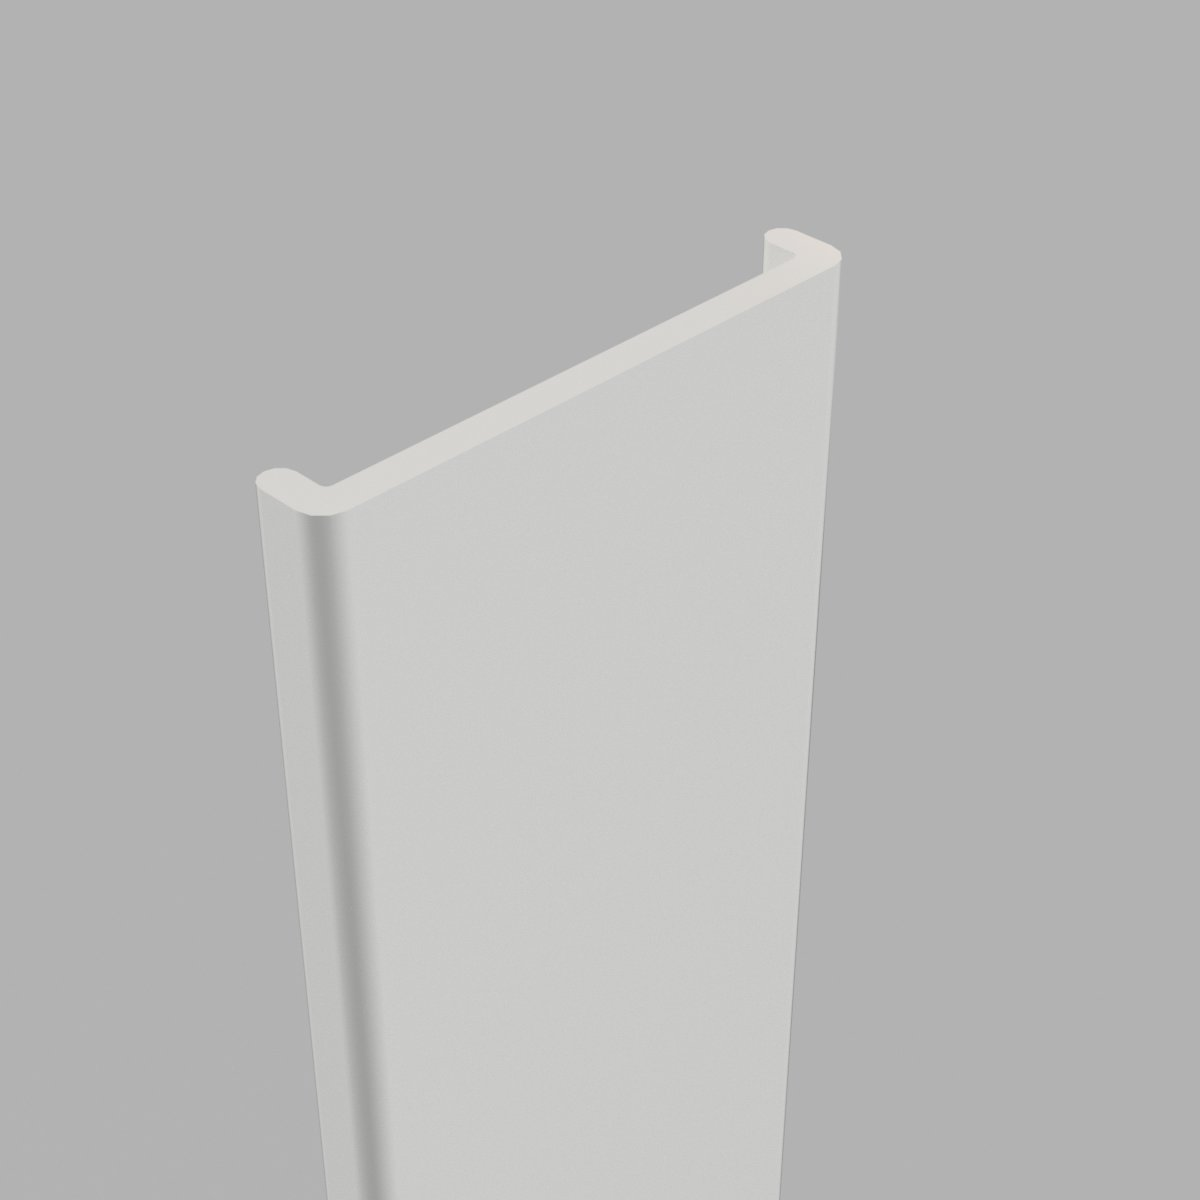 PVC Hinge Side U Rail